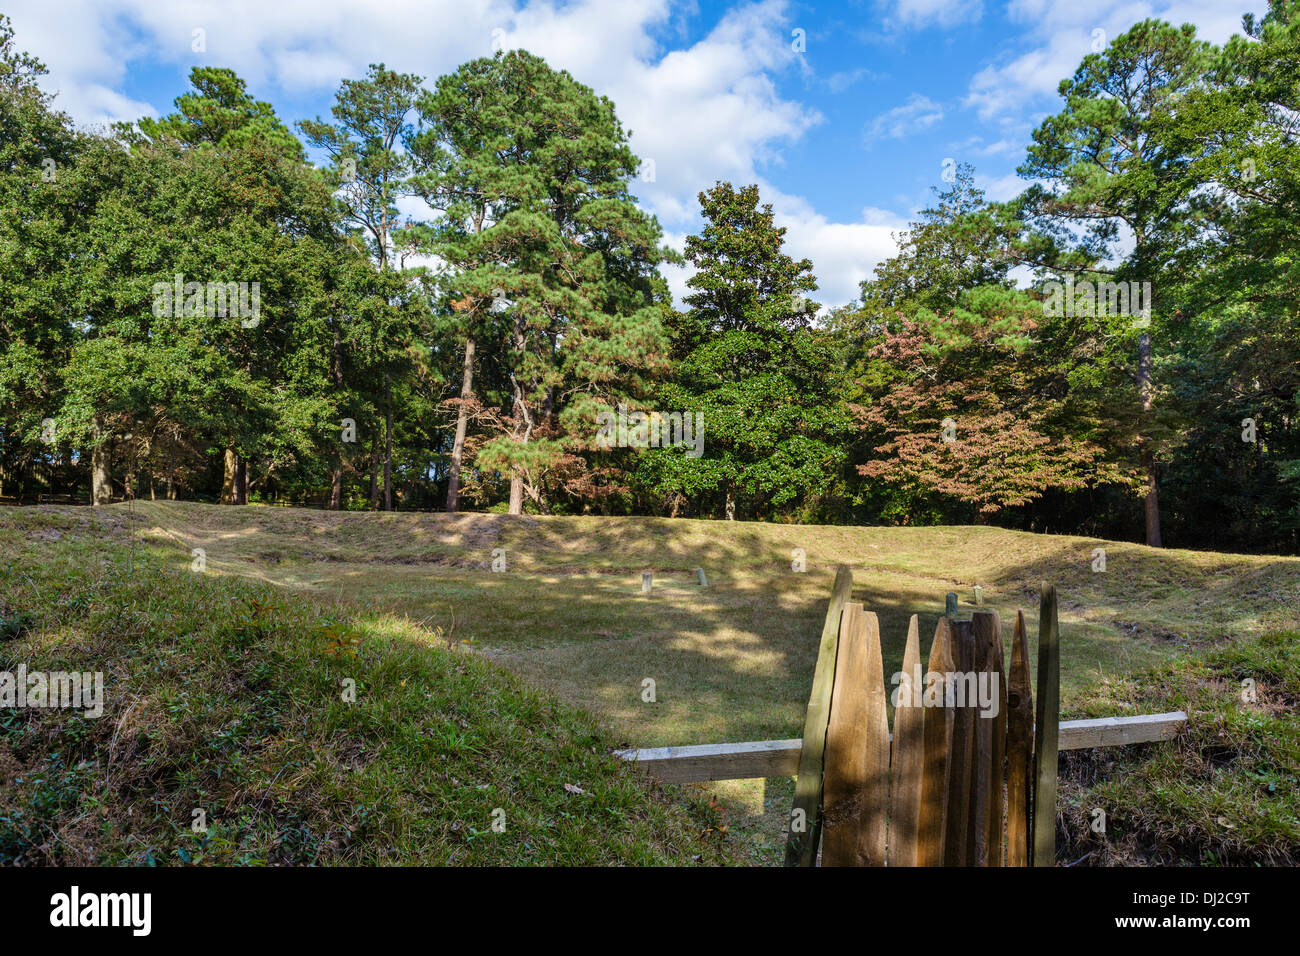 Reconstructed Earthen Fort at Fort Raleigh National Historic Site, Roanoke Island, North Carolina, USA Stock Photo